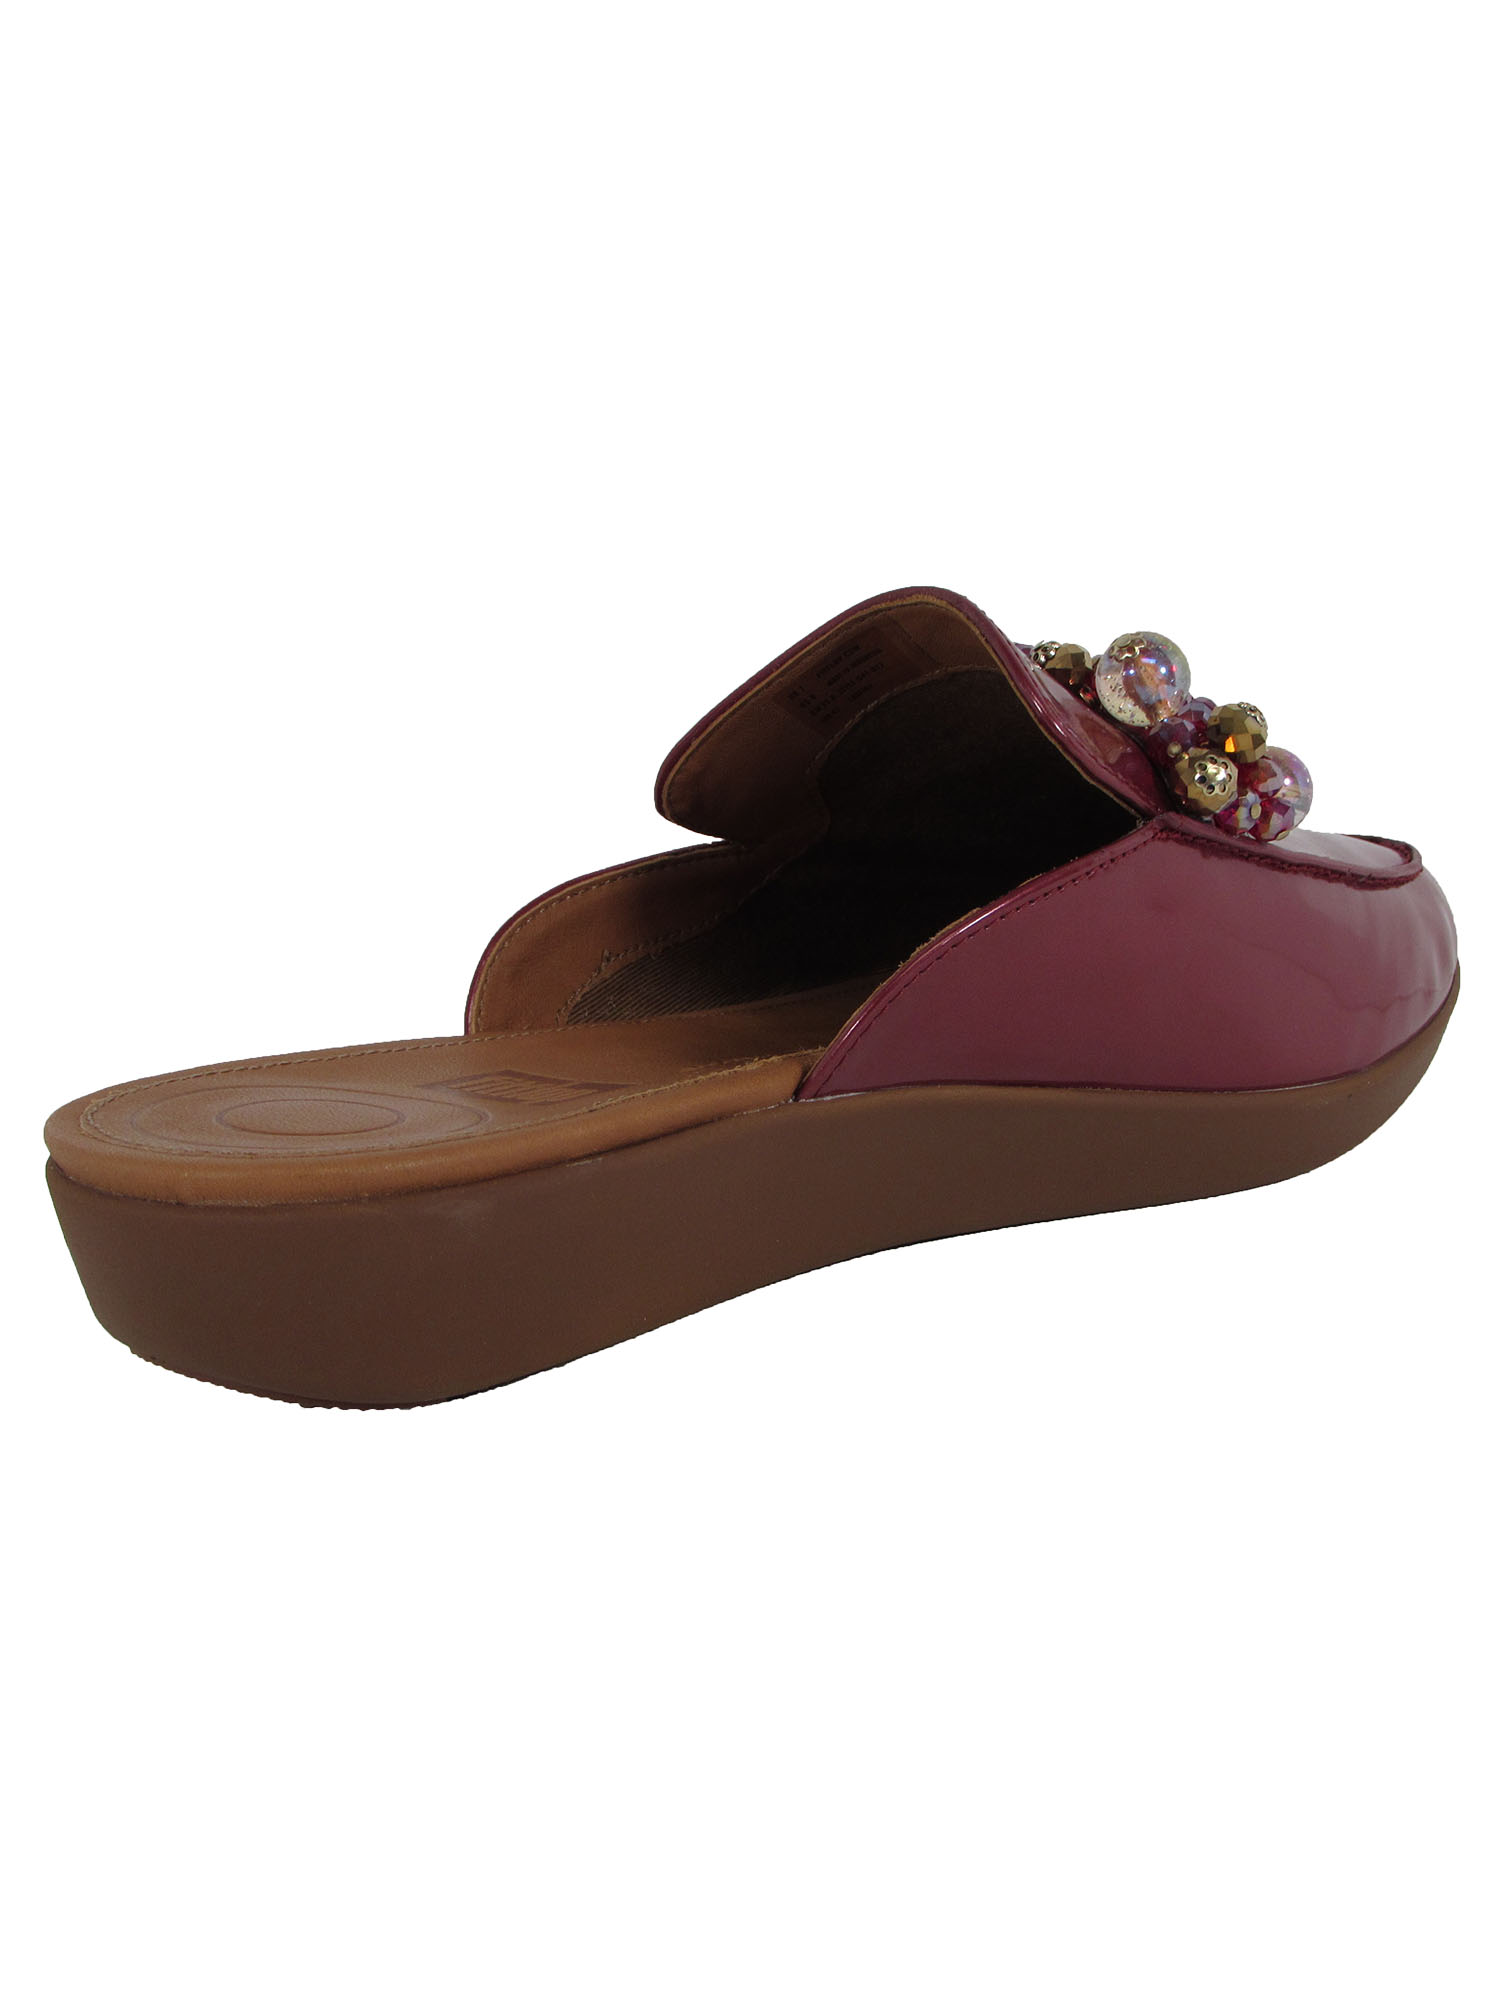 Fitflop-Womens-Serene-Deco-Beaded-Mule-Shoes thumbnail 7